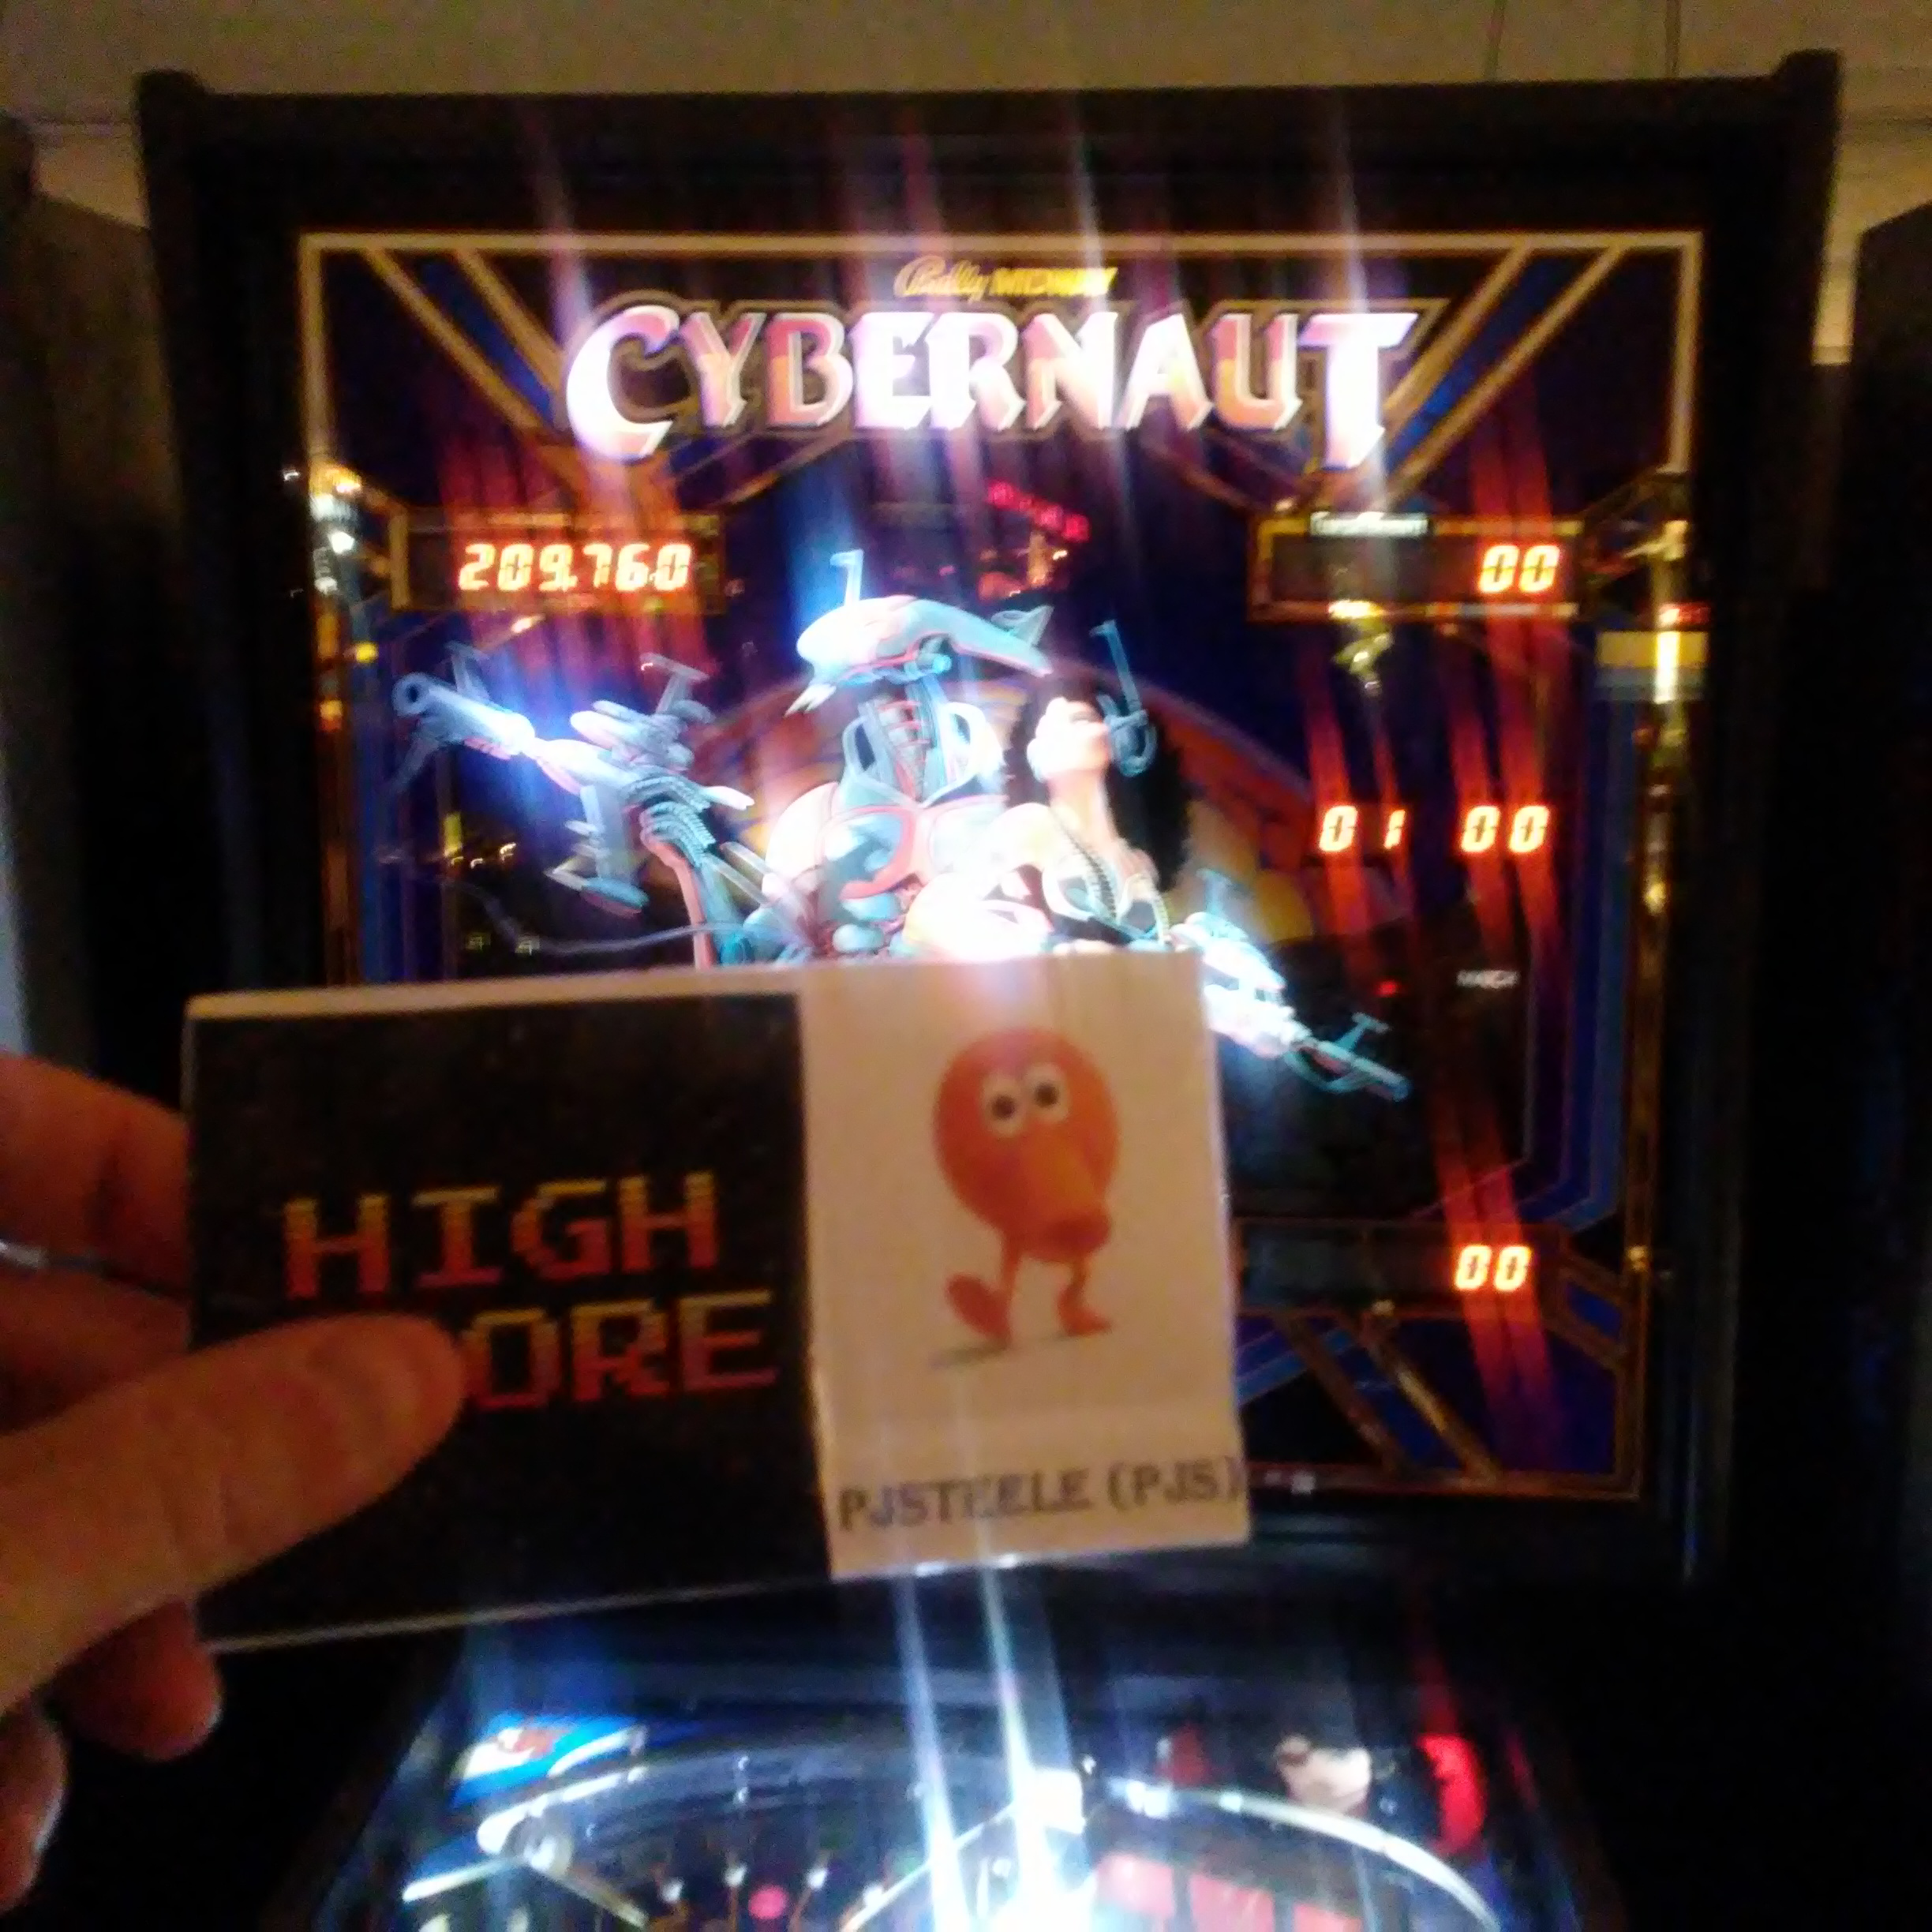 Pjsteele: Cybernaut (Pinball: 3 Balls) 209,760 points on 2017-12-31 17:44:50